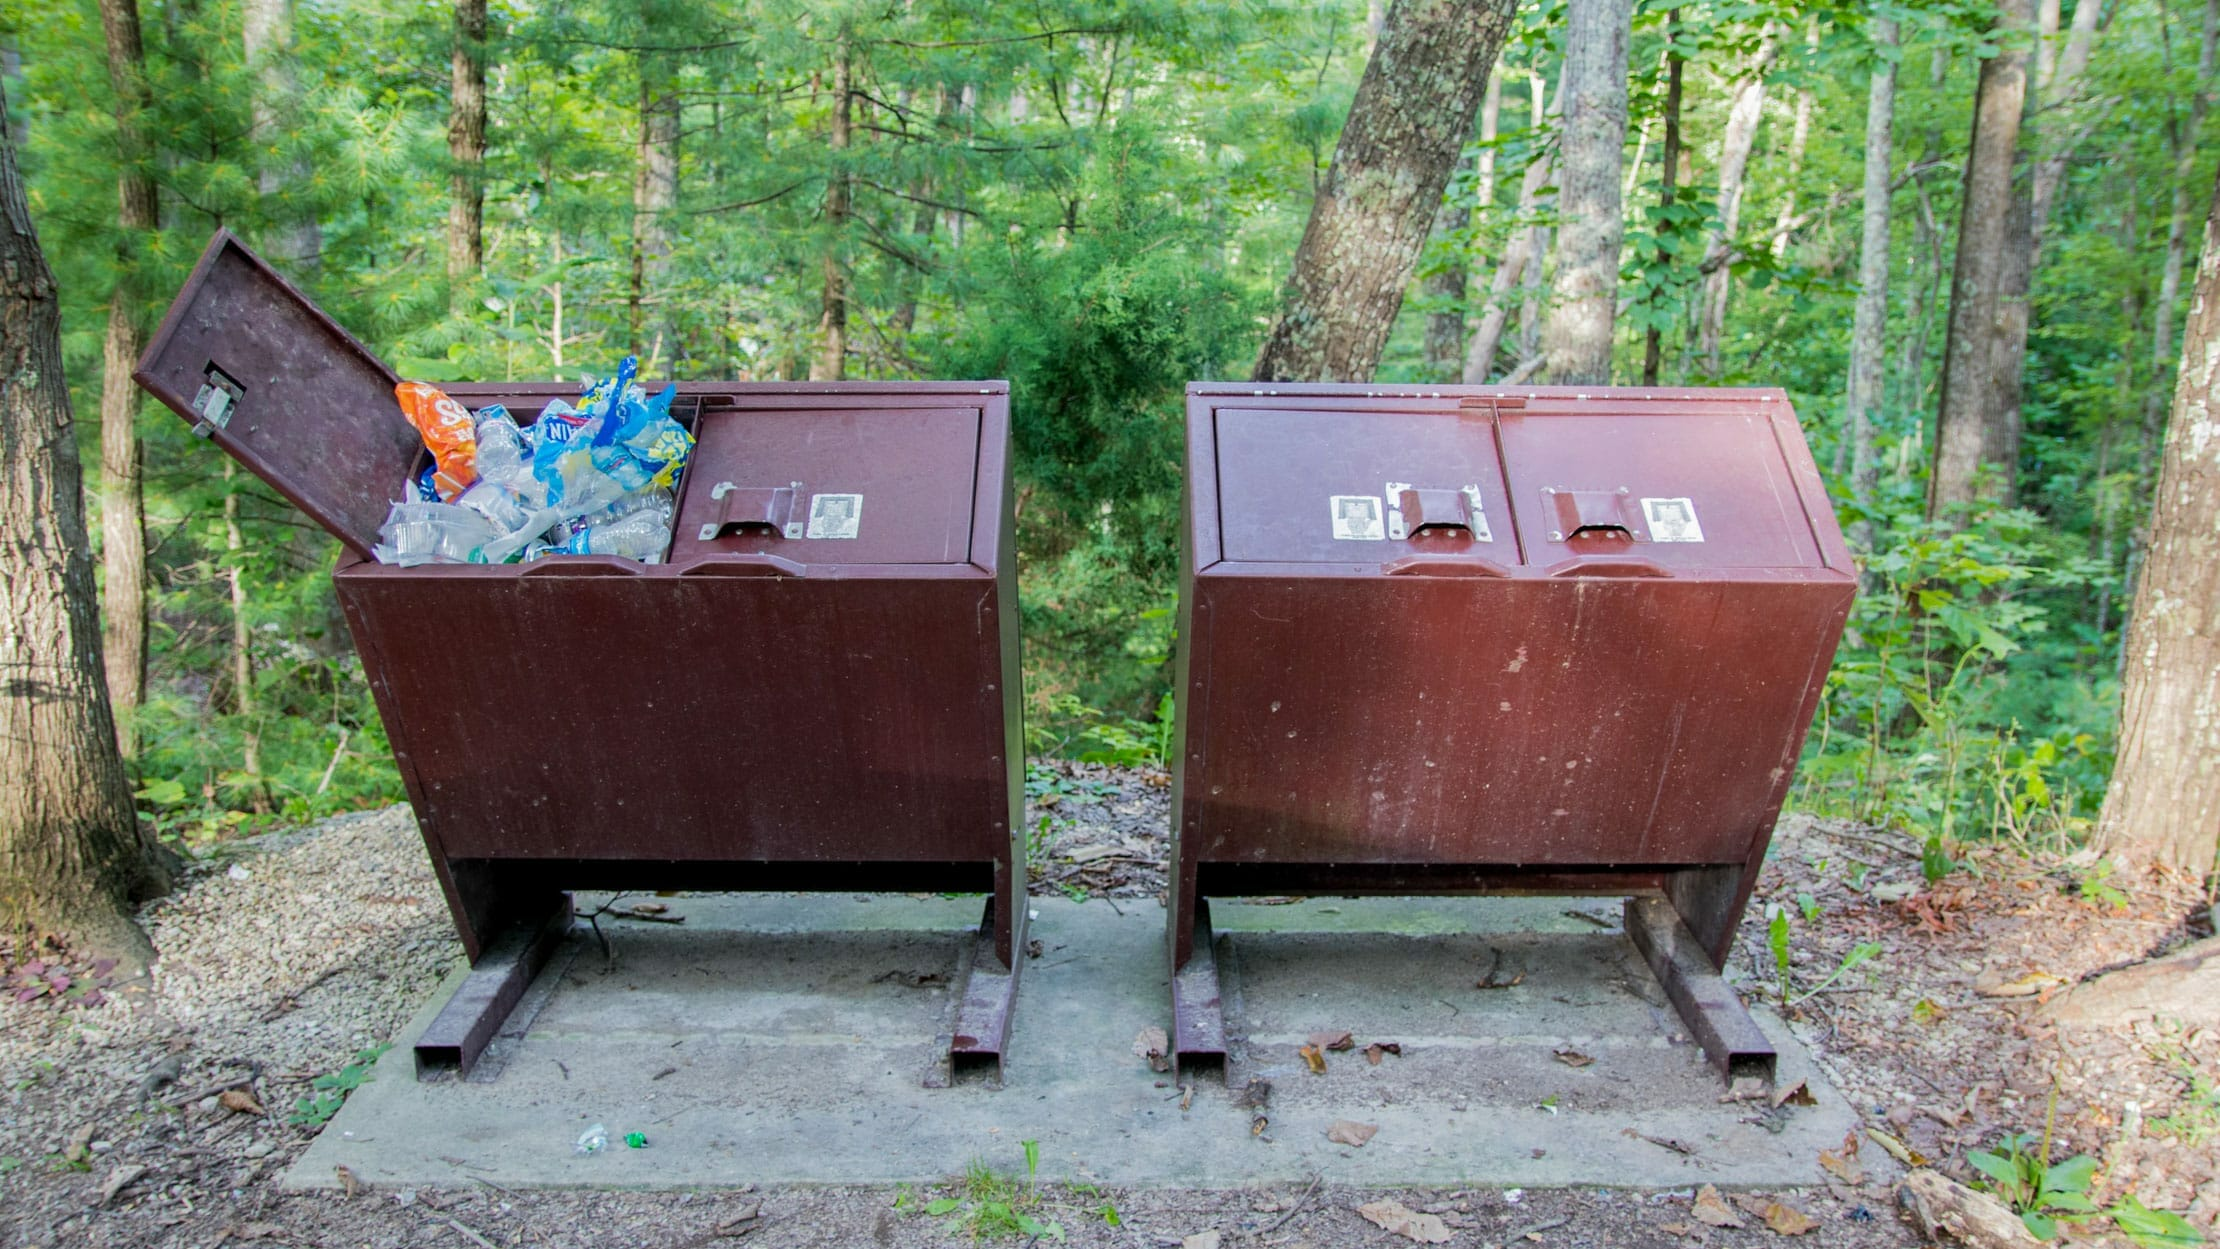 Principle 3: Dispose of Waste Properly - Leave No Trace Center